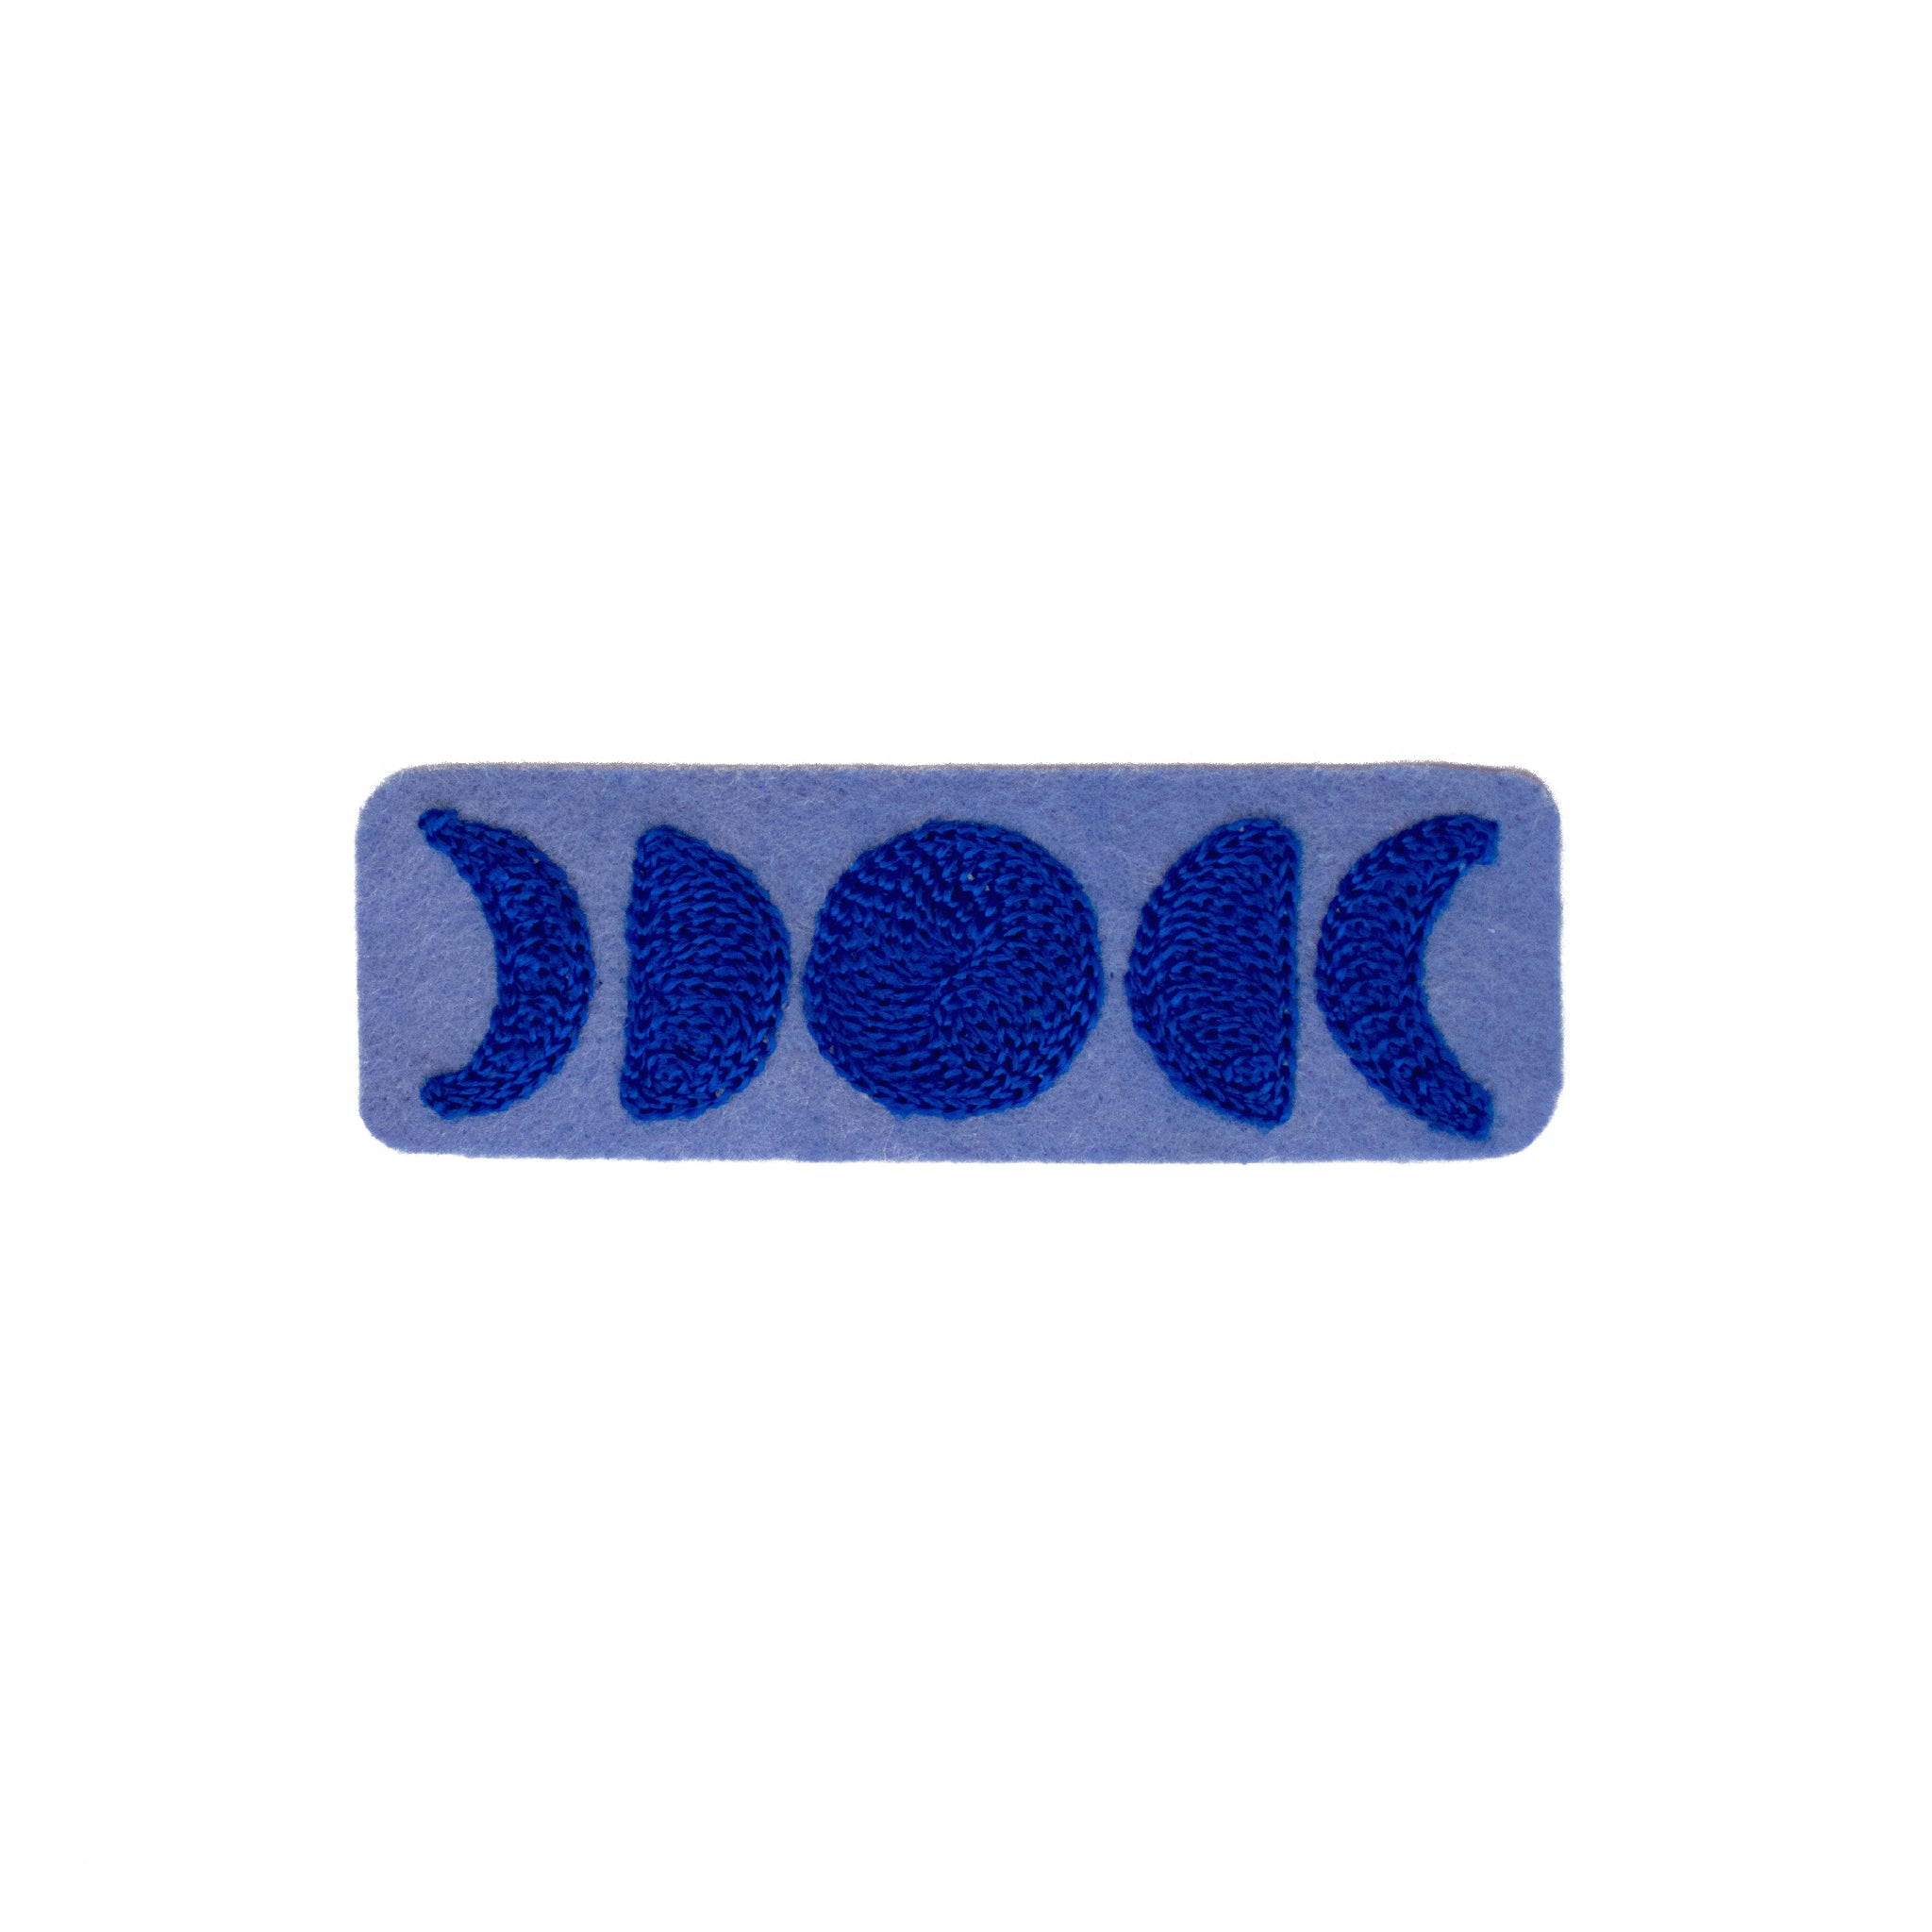 Moon Phases Blue - Chainstitch Patch